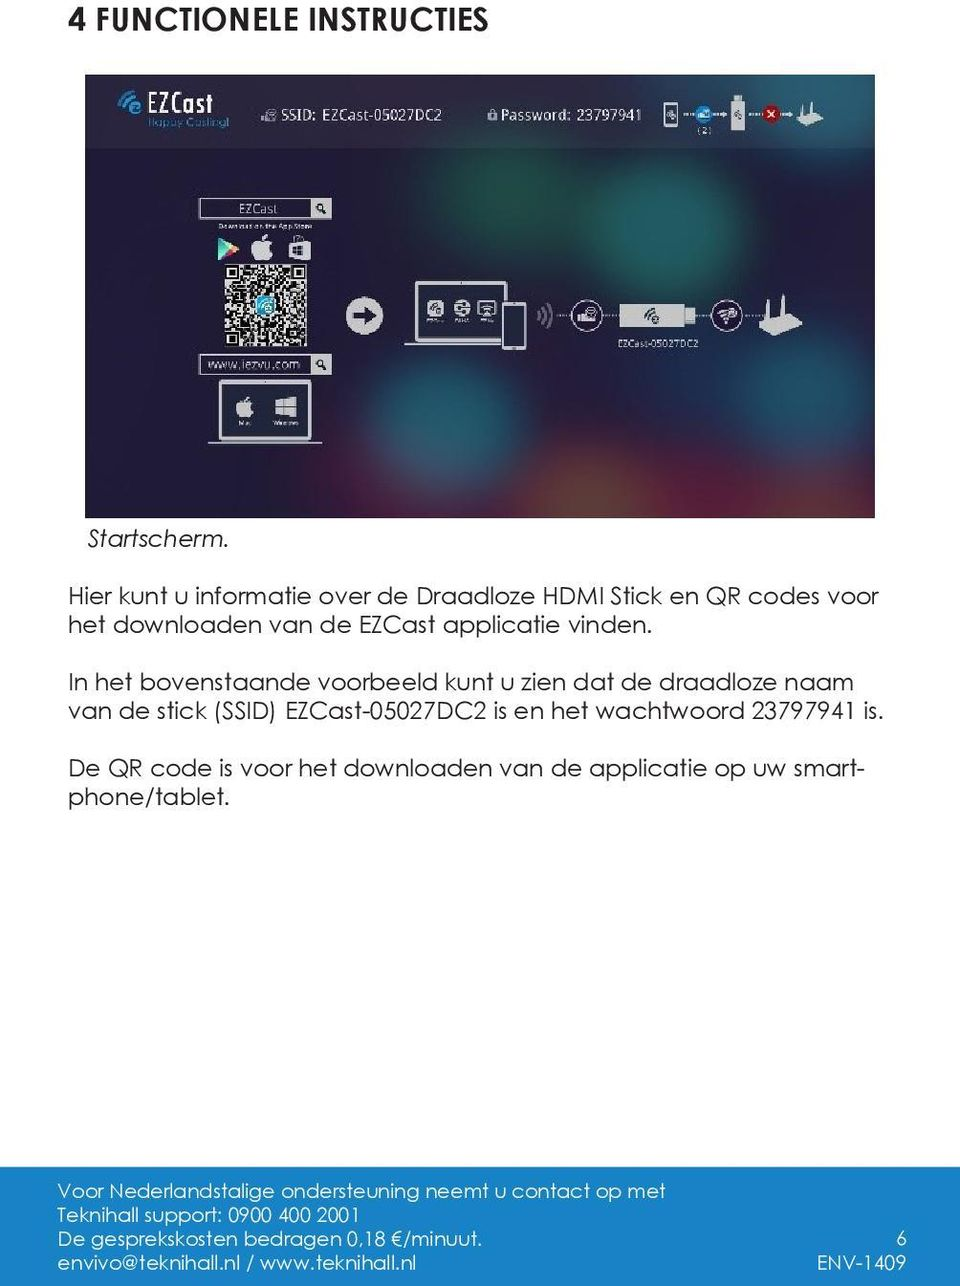 EZCast applicatie vinden.